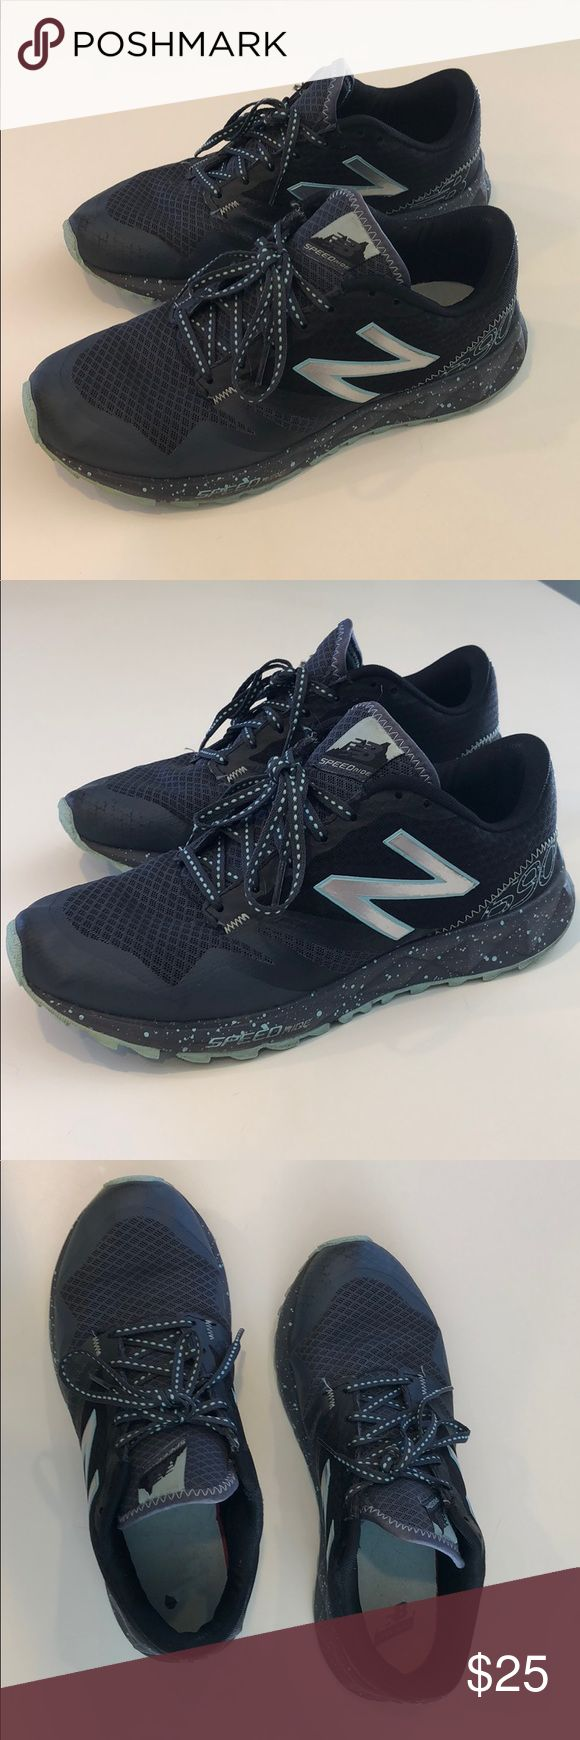 New Balance Size 8 Womens All Terrain Sneakers New Balance All Terrain Womens Sneakers in navy blue and light blue. Great support and love these shoes. Just moving and downsizing. MUST GO! New Balance Shoes Sneakers